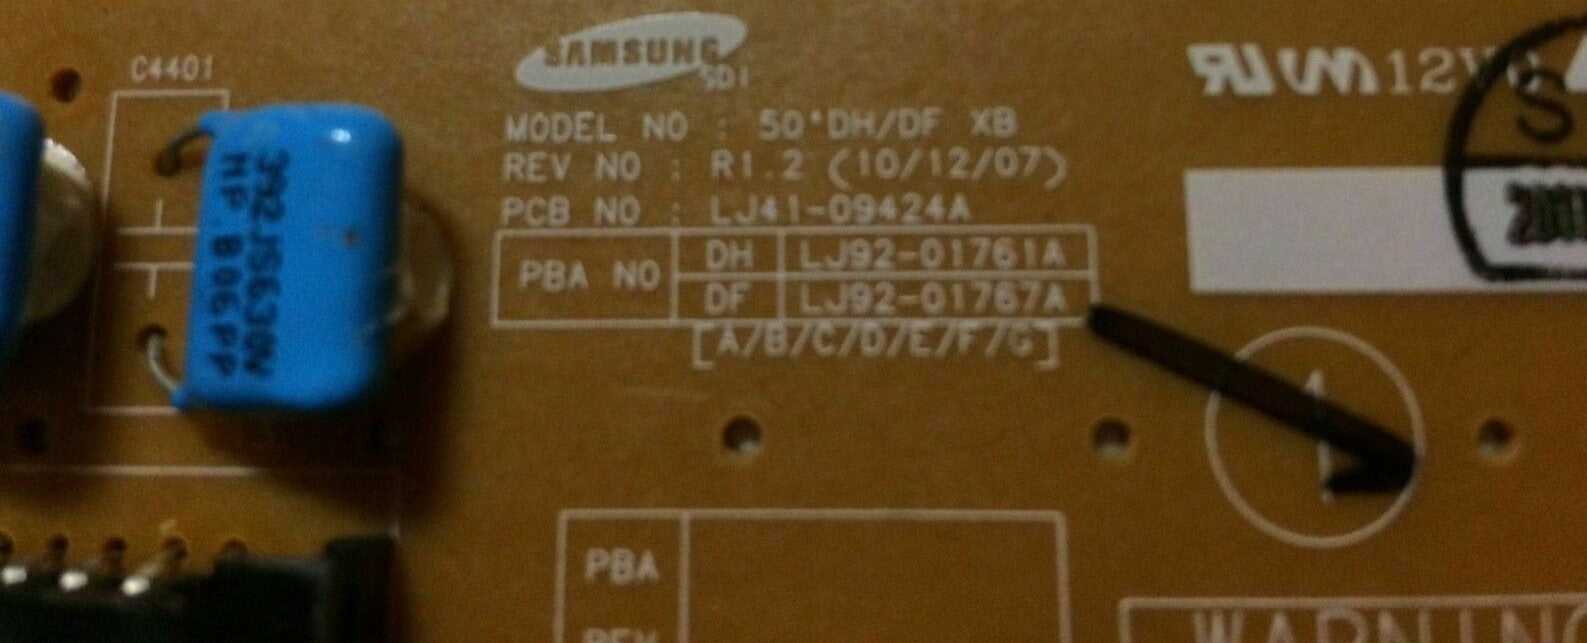 X-Buffer Board LJ41-09424A, 50'DH/DF